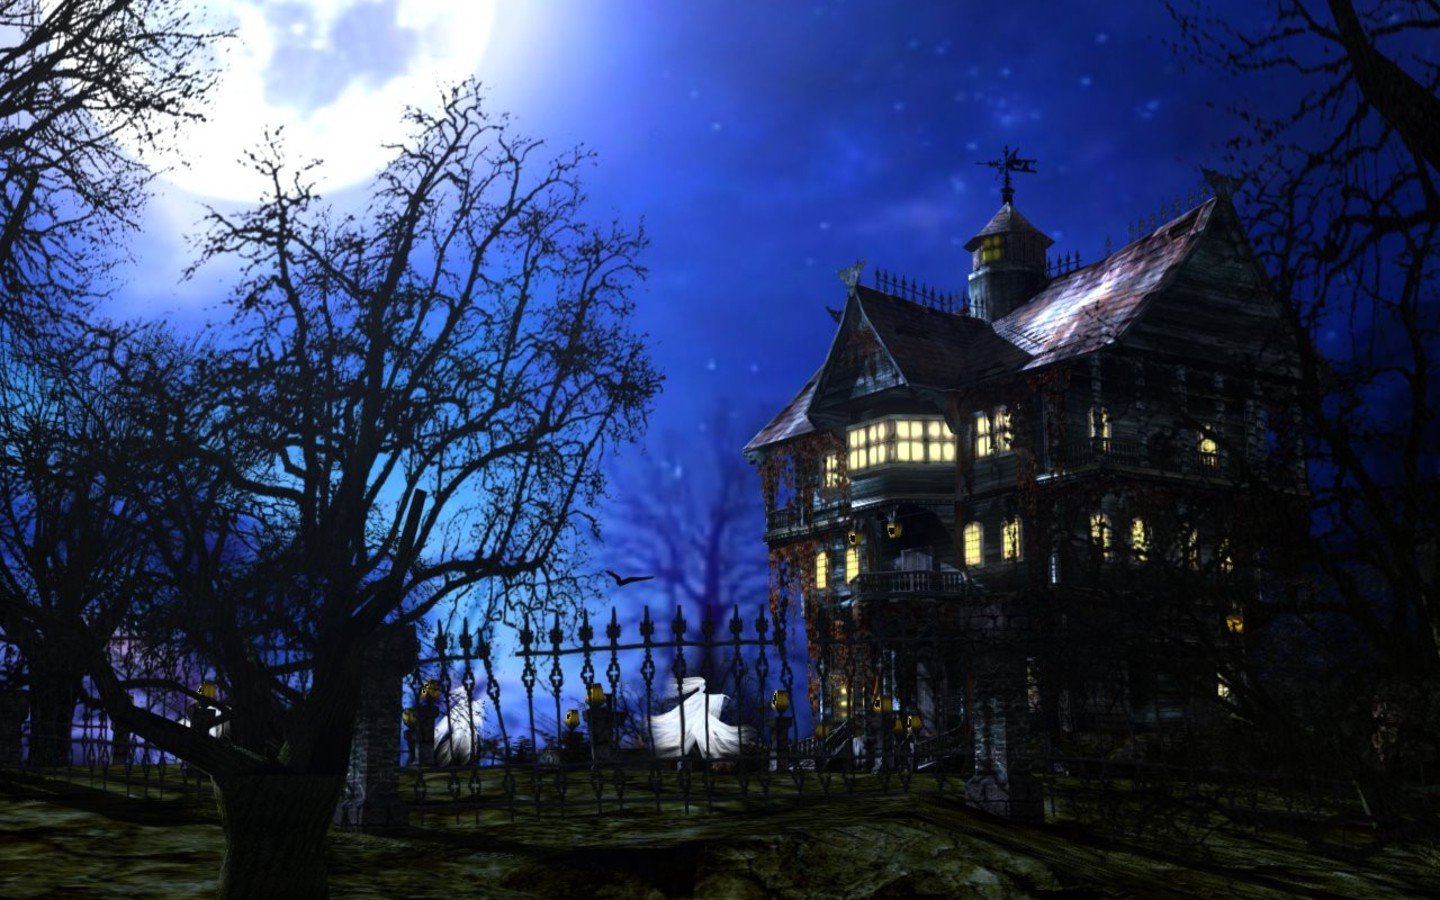 Beautiful Wallpapers Of Lonely Girl Horror Ghost Houses Wallpapers Hq Image Size 1440x900